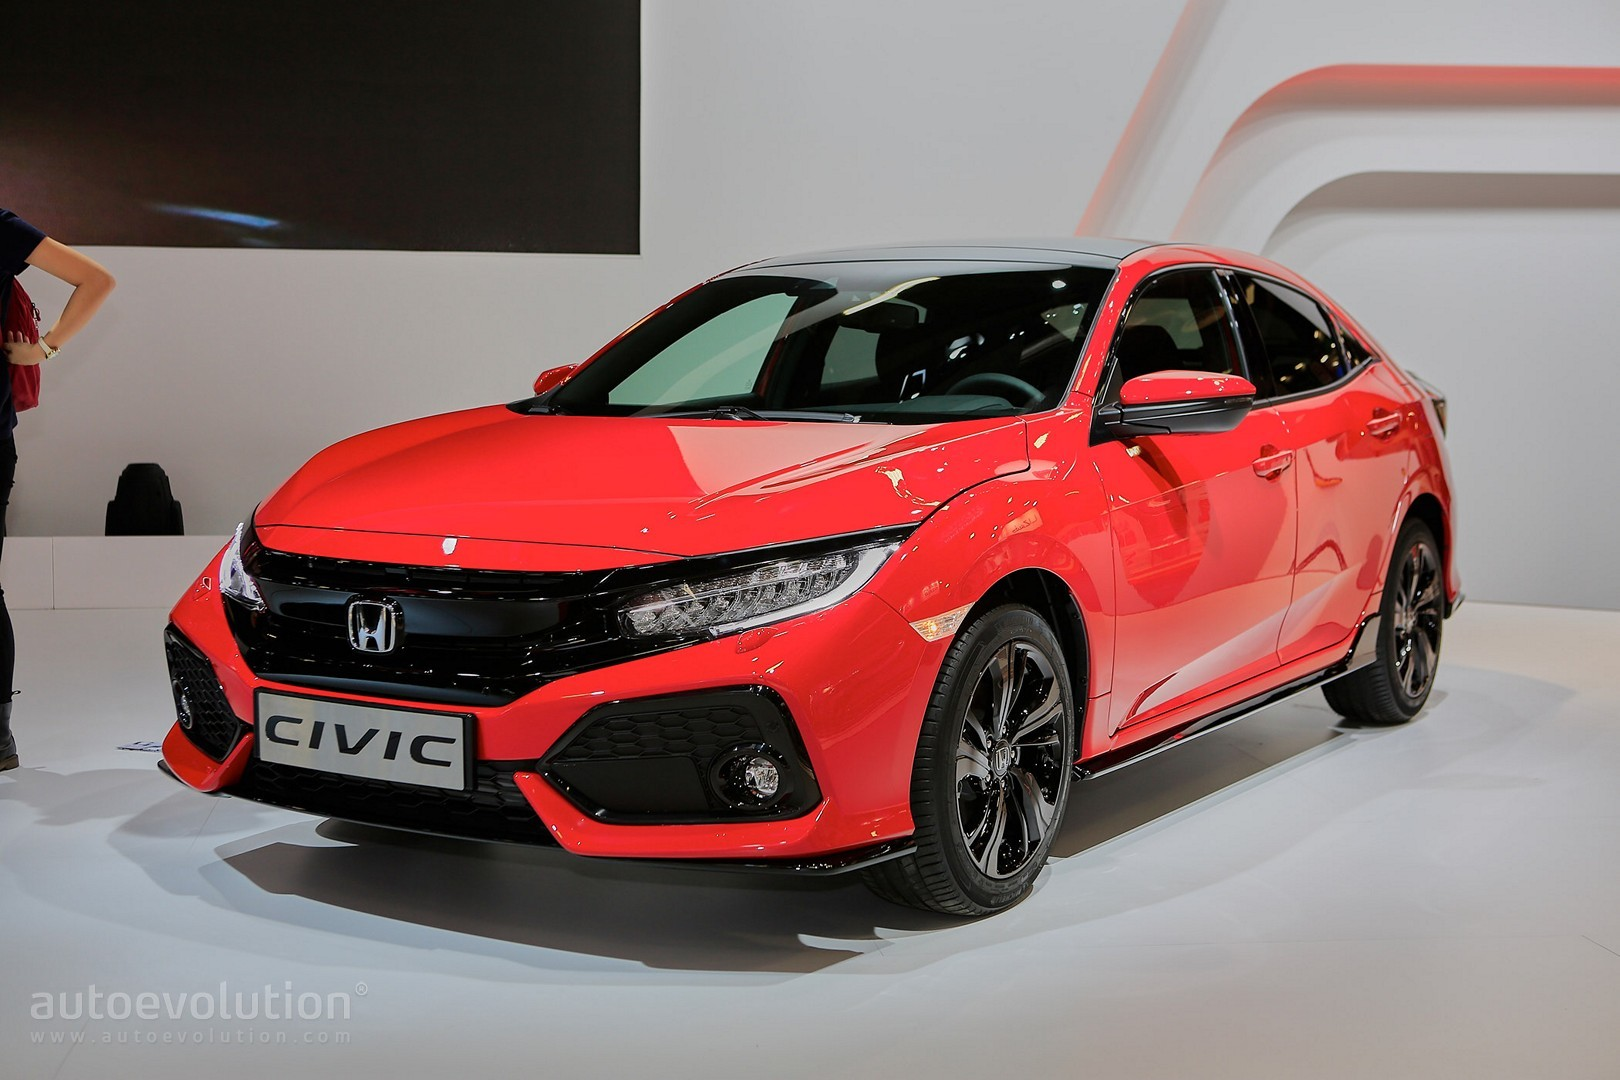 2017 Honda Civic Hatchback Looks Like a Race Car in Paris ...